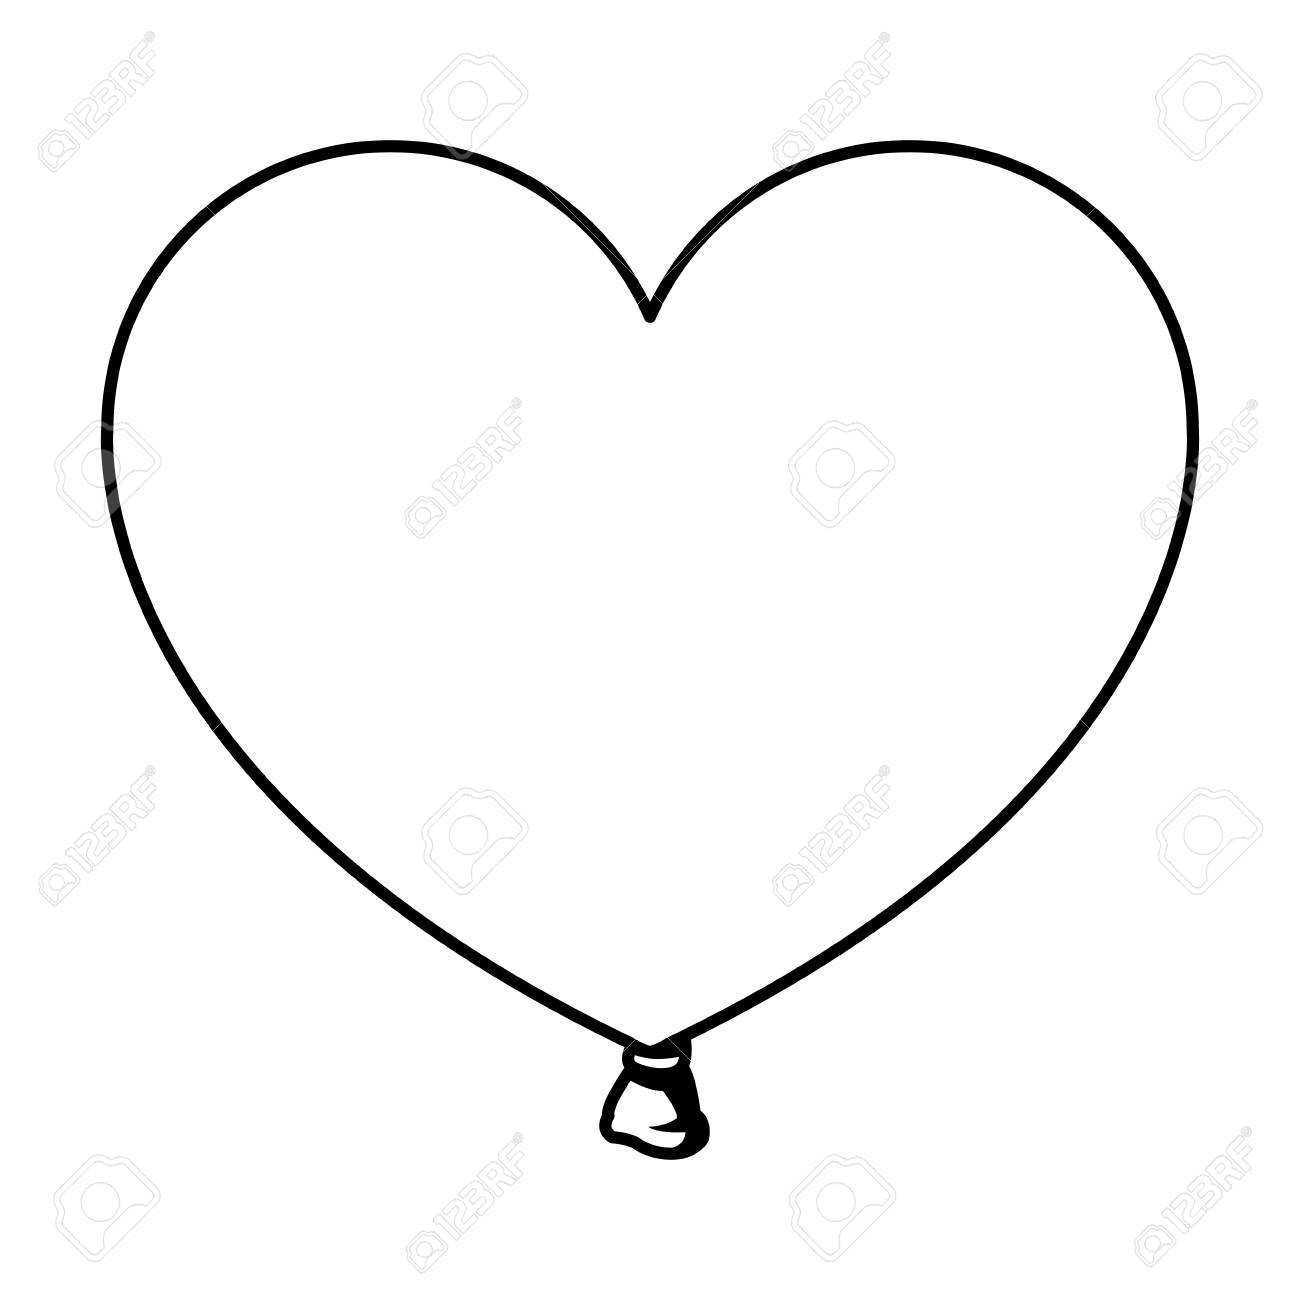 Heart shaped balloon in black and white vector illustration graphic...